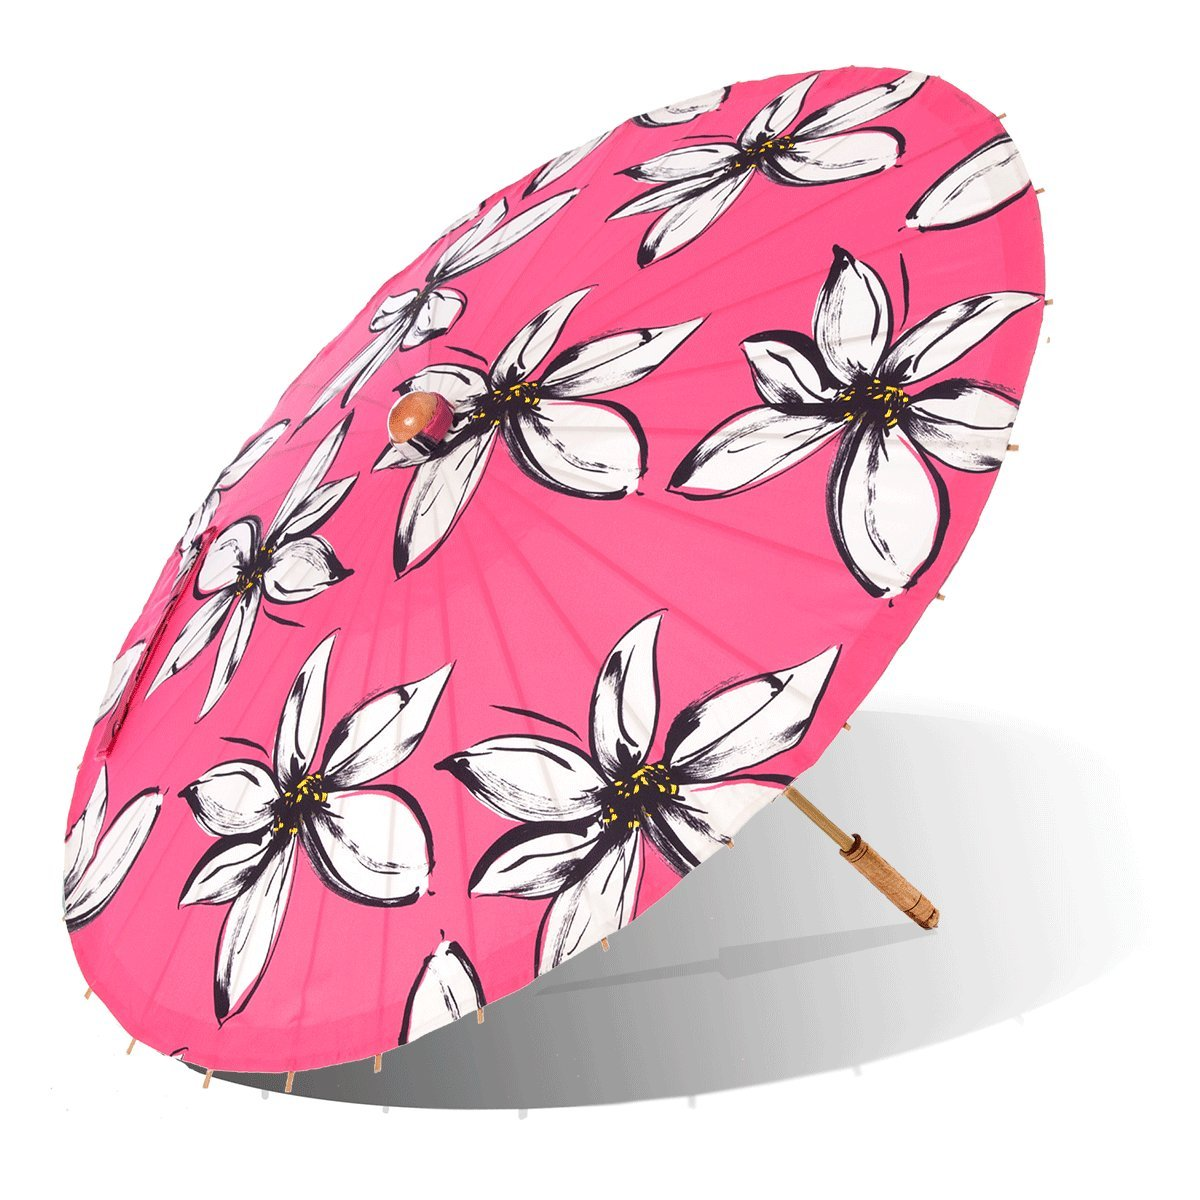 Lily-Lark Mod Flowers UV protection sun parasol, rated UPF 50+ by Lily-Lark